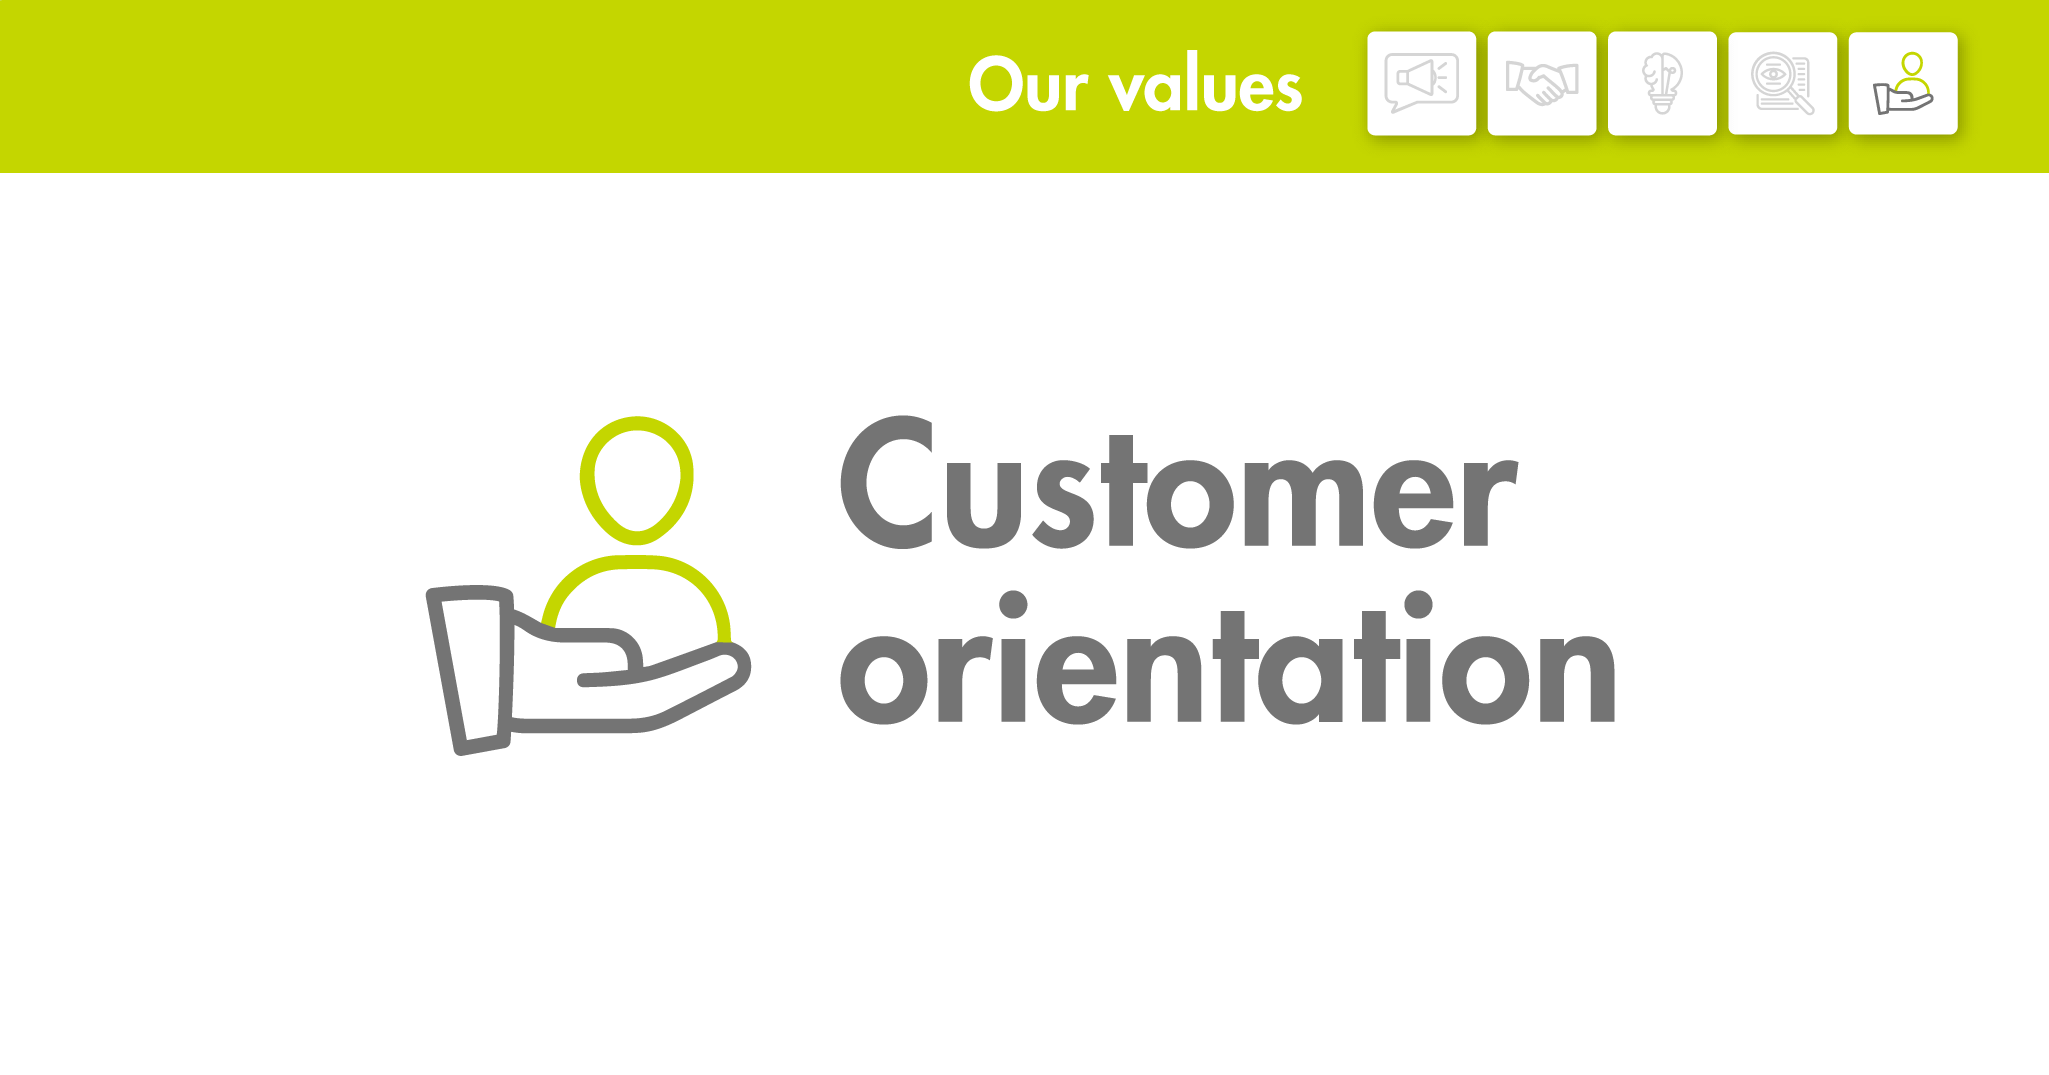 Our values: Customer orientation